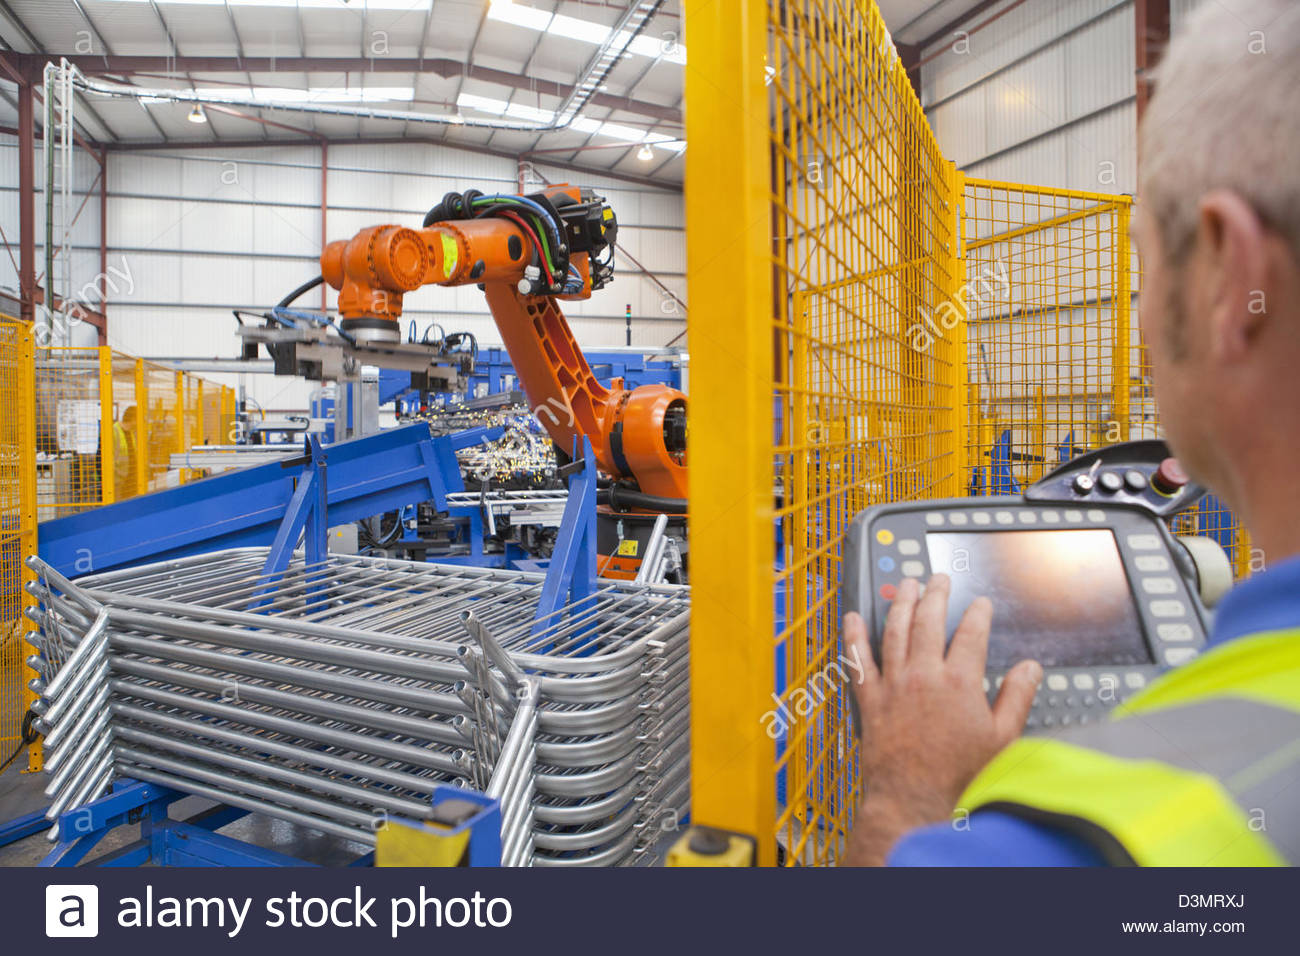 Worker operating robotic machinery in factory - Stock Image